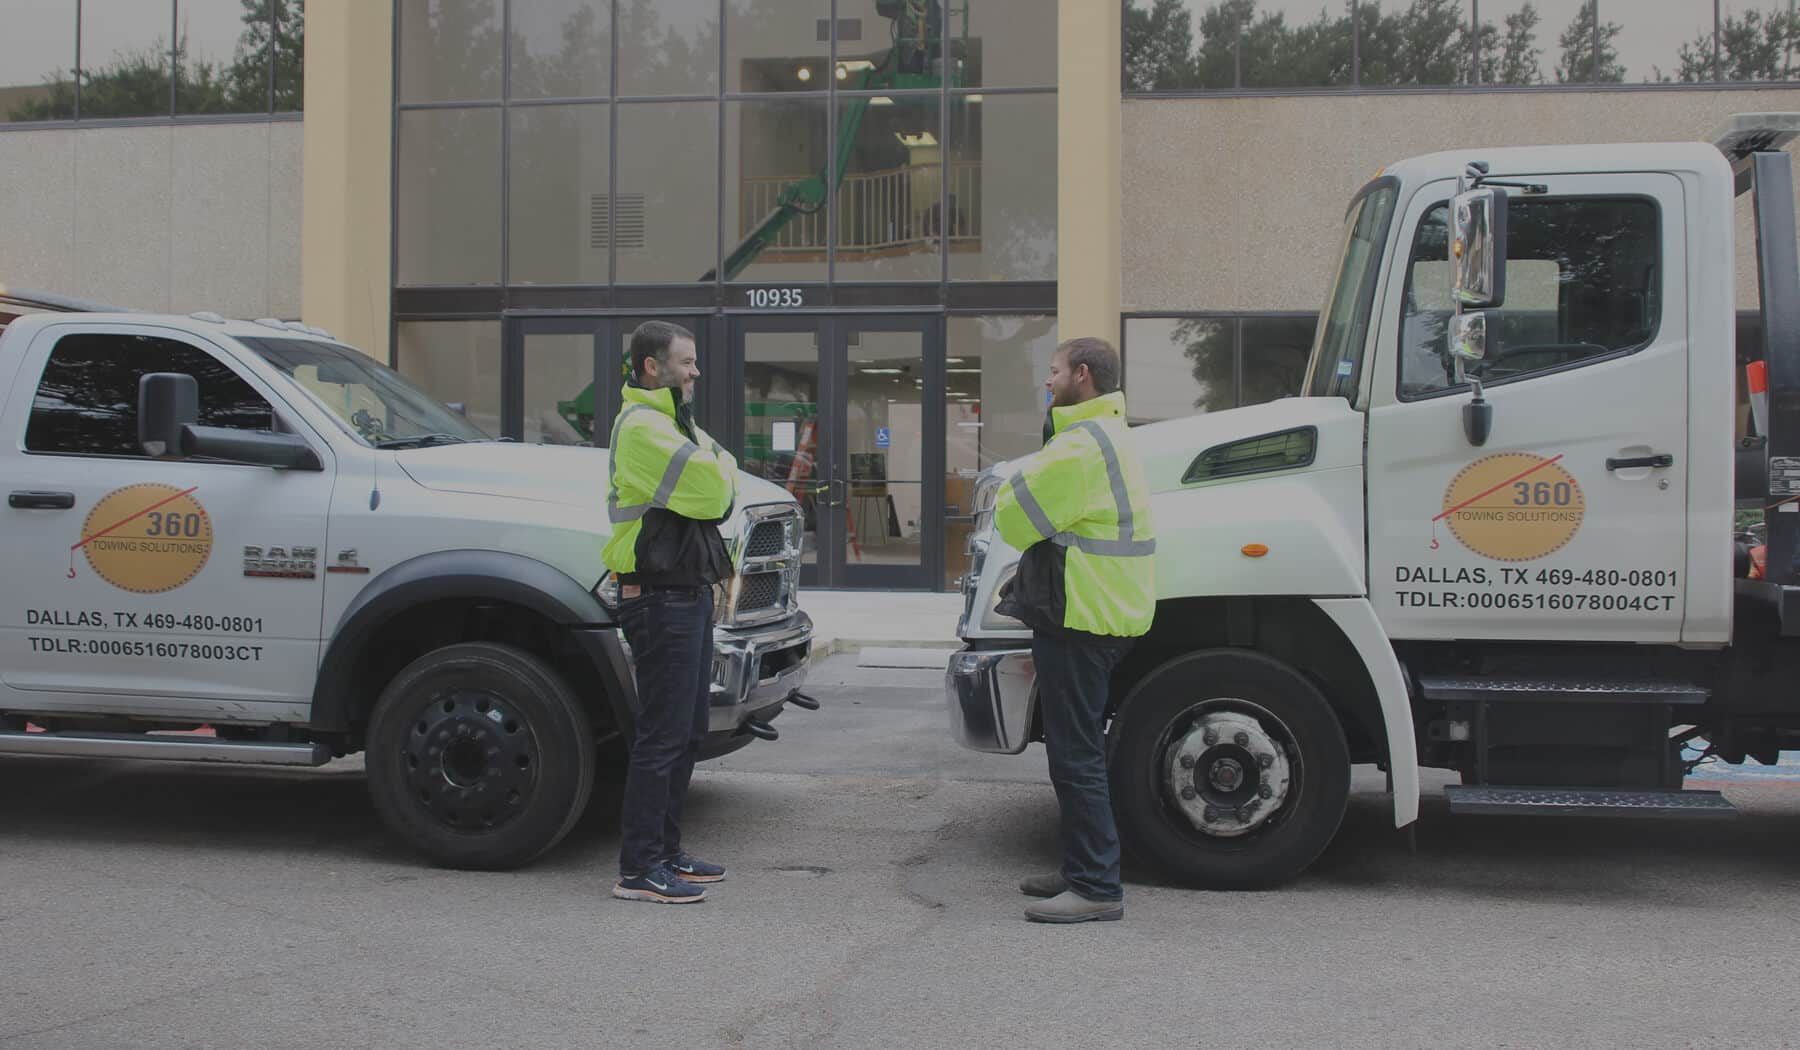 360 Towing Solutions Company All Over Texas